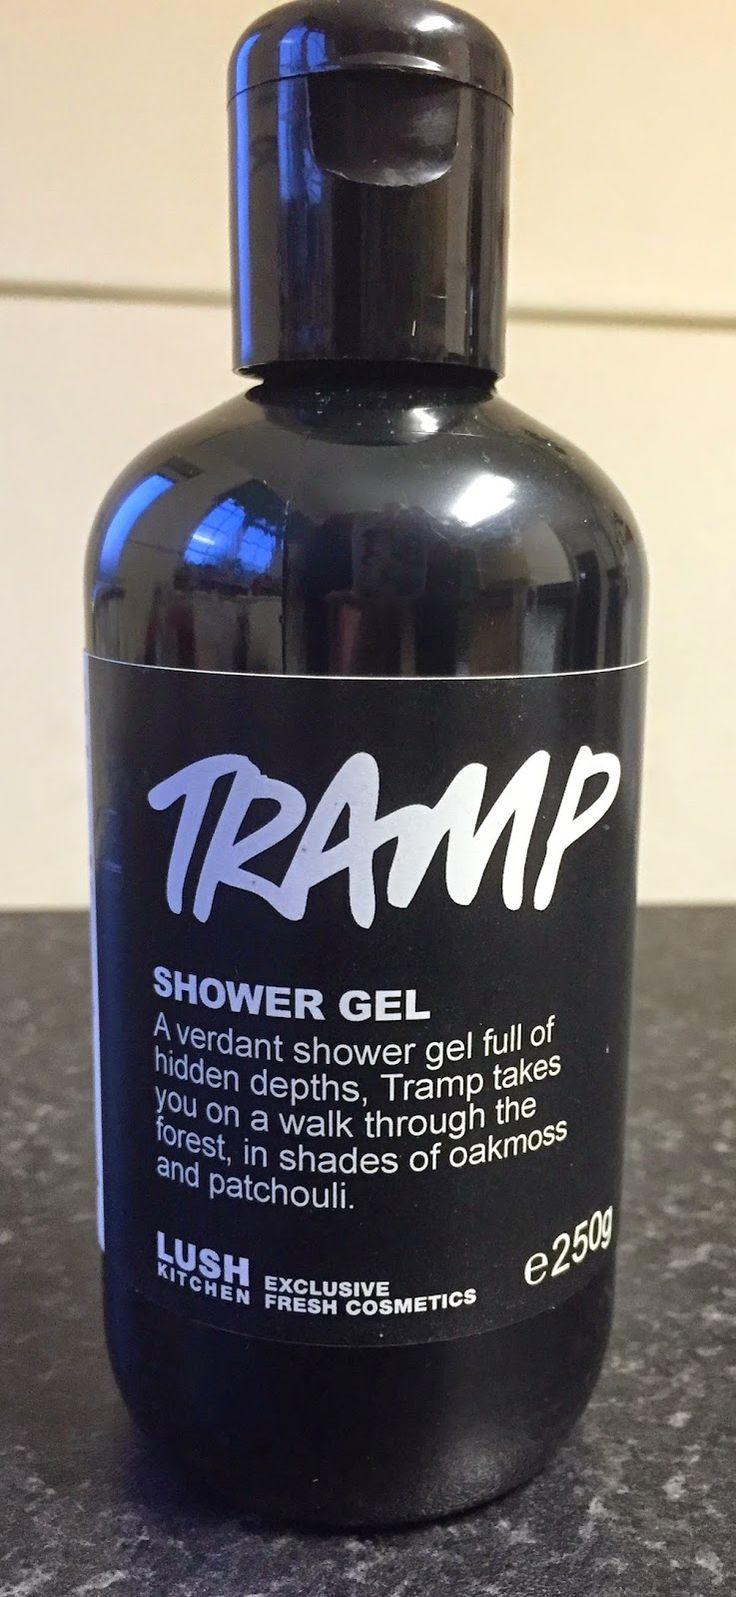 "Tramp Shower Gel: ""A verdant shower gel full of hidden depths, Tramp takes you on a walk through the forest, in shades of oakmoss and patchouli"""